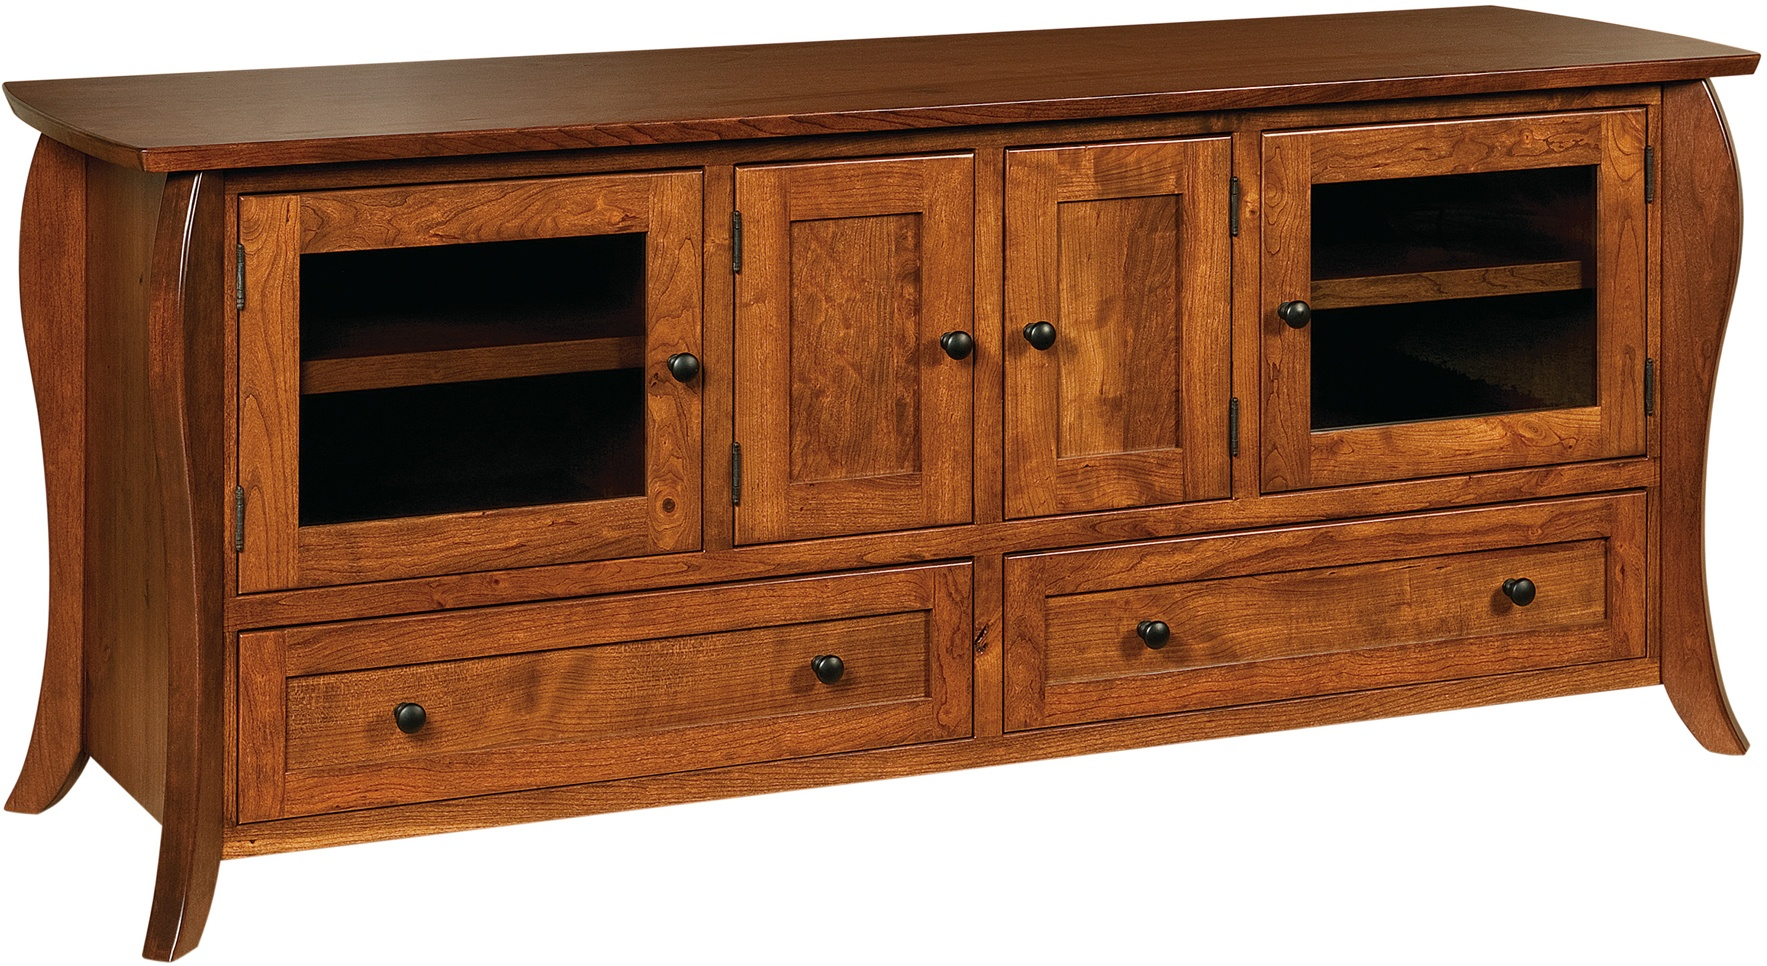 Quincy TV Cabinet Collection